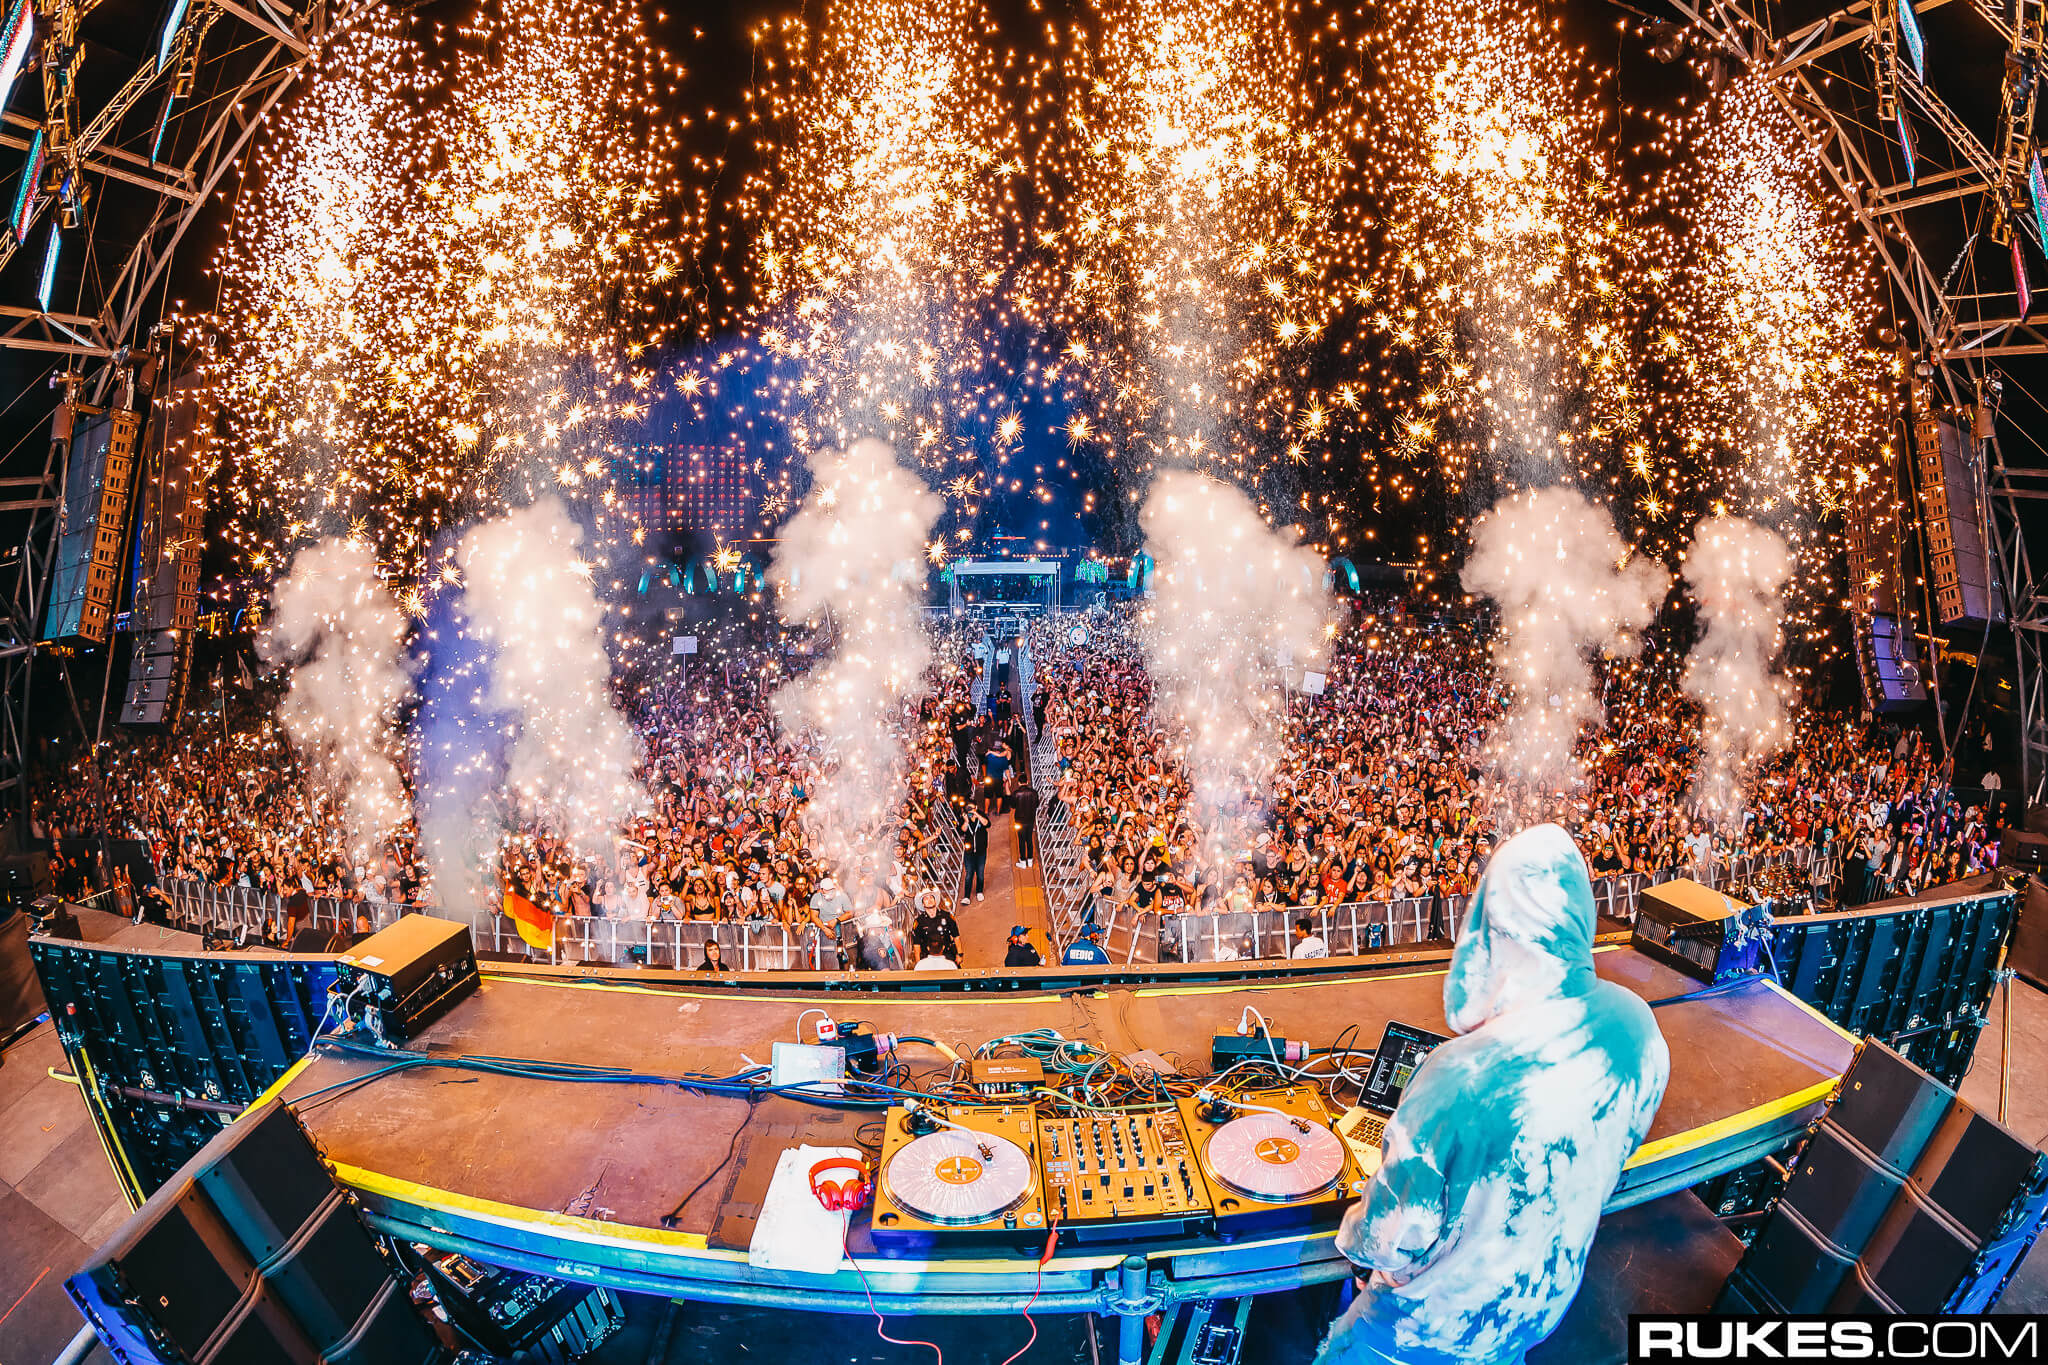 dj snake headlines something wonderful festival